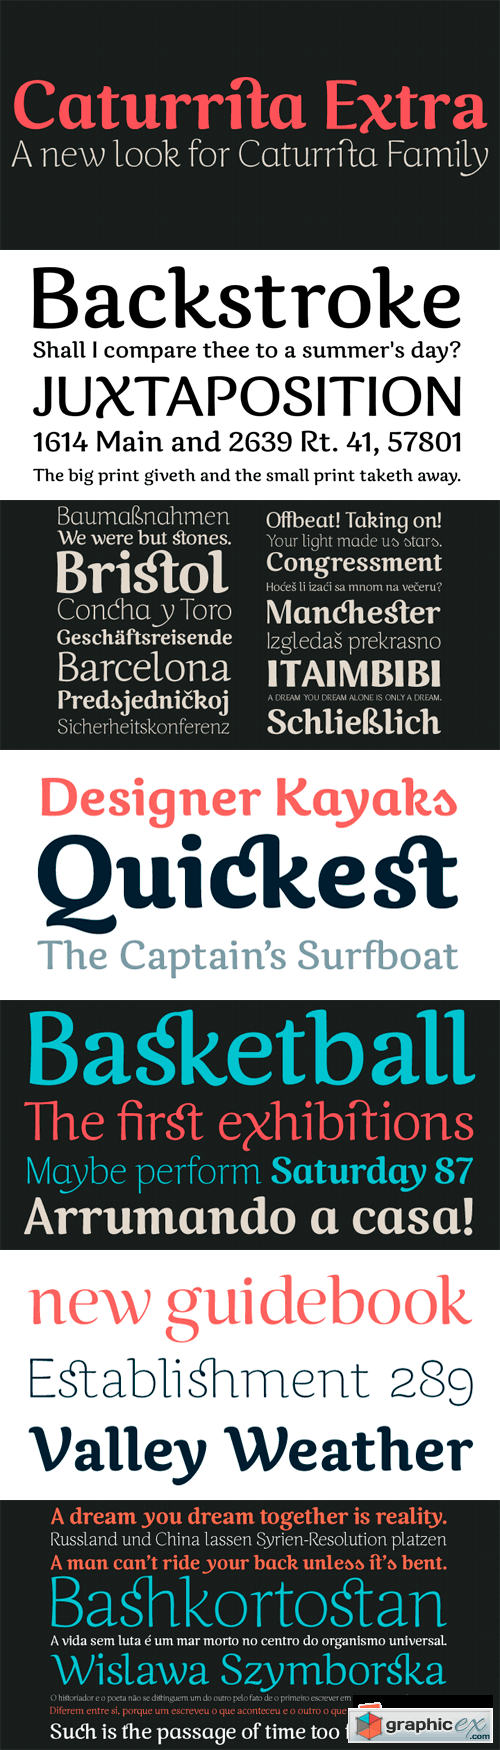 Caturrita Font Family - 5 Fonts for $40